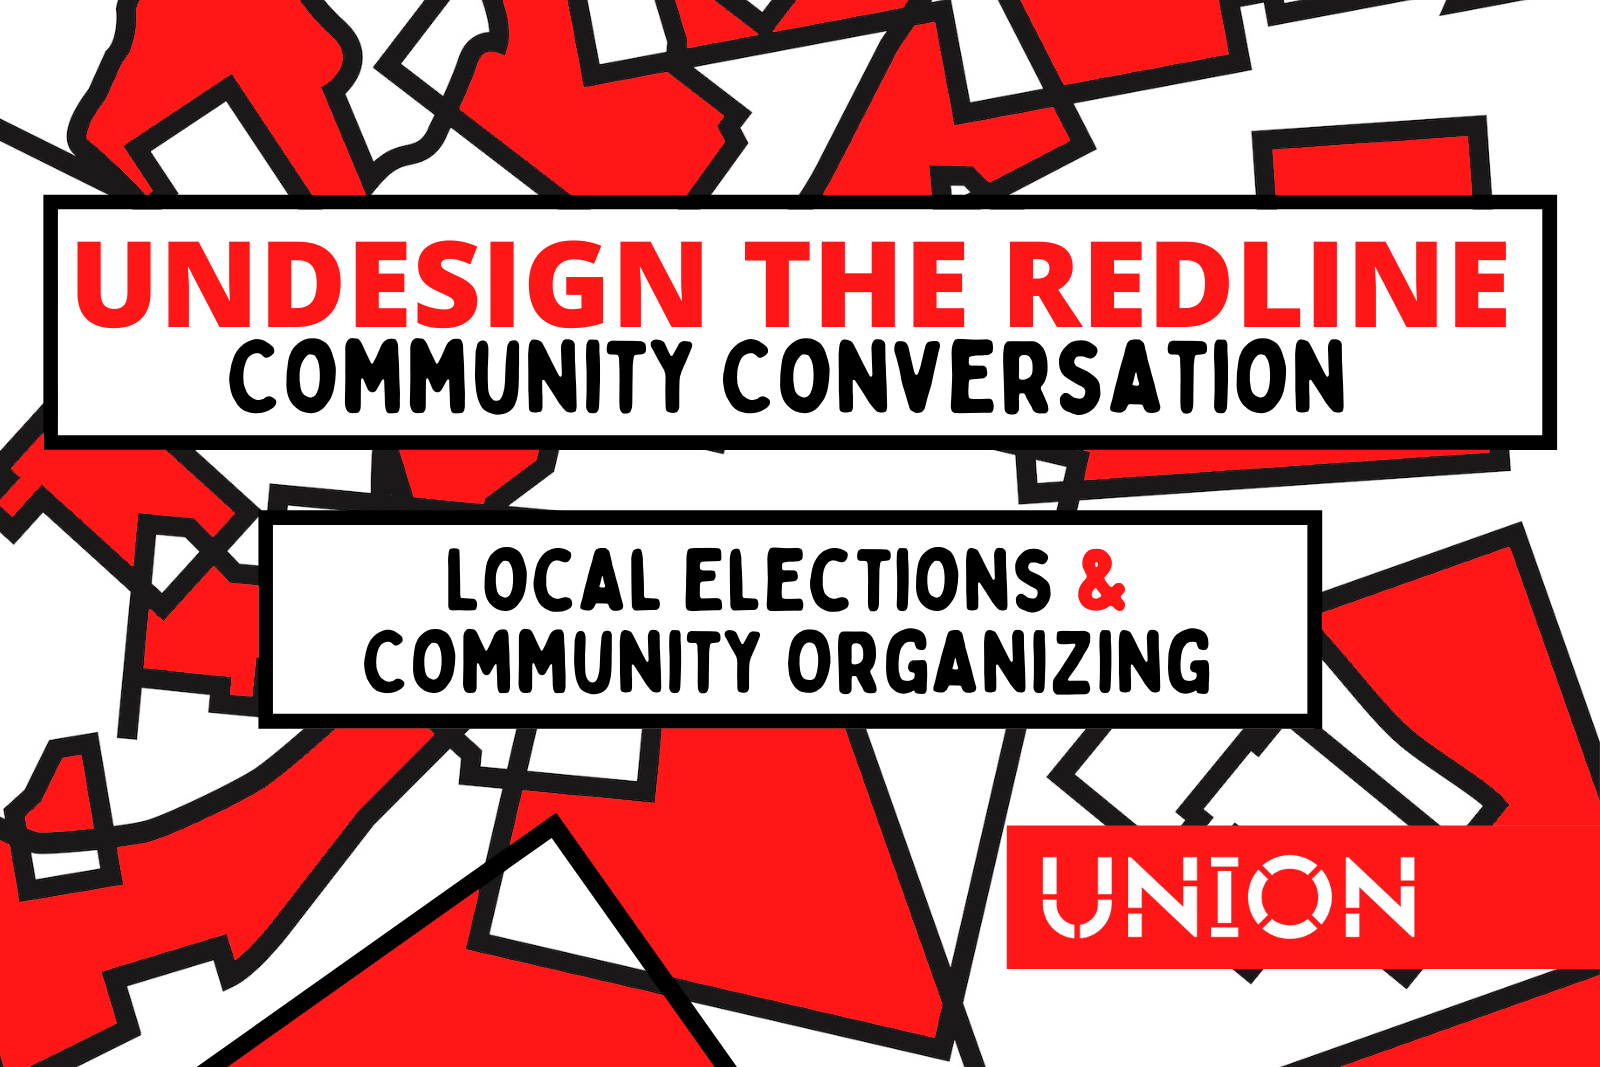 Homepage Undesign the Redline Community Conversation Local elections and community organizing